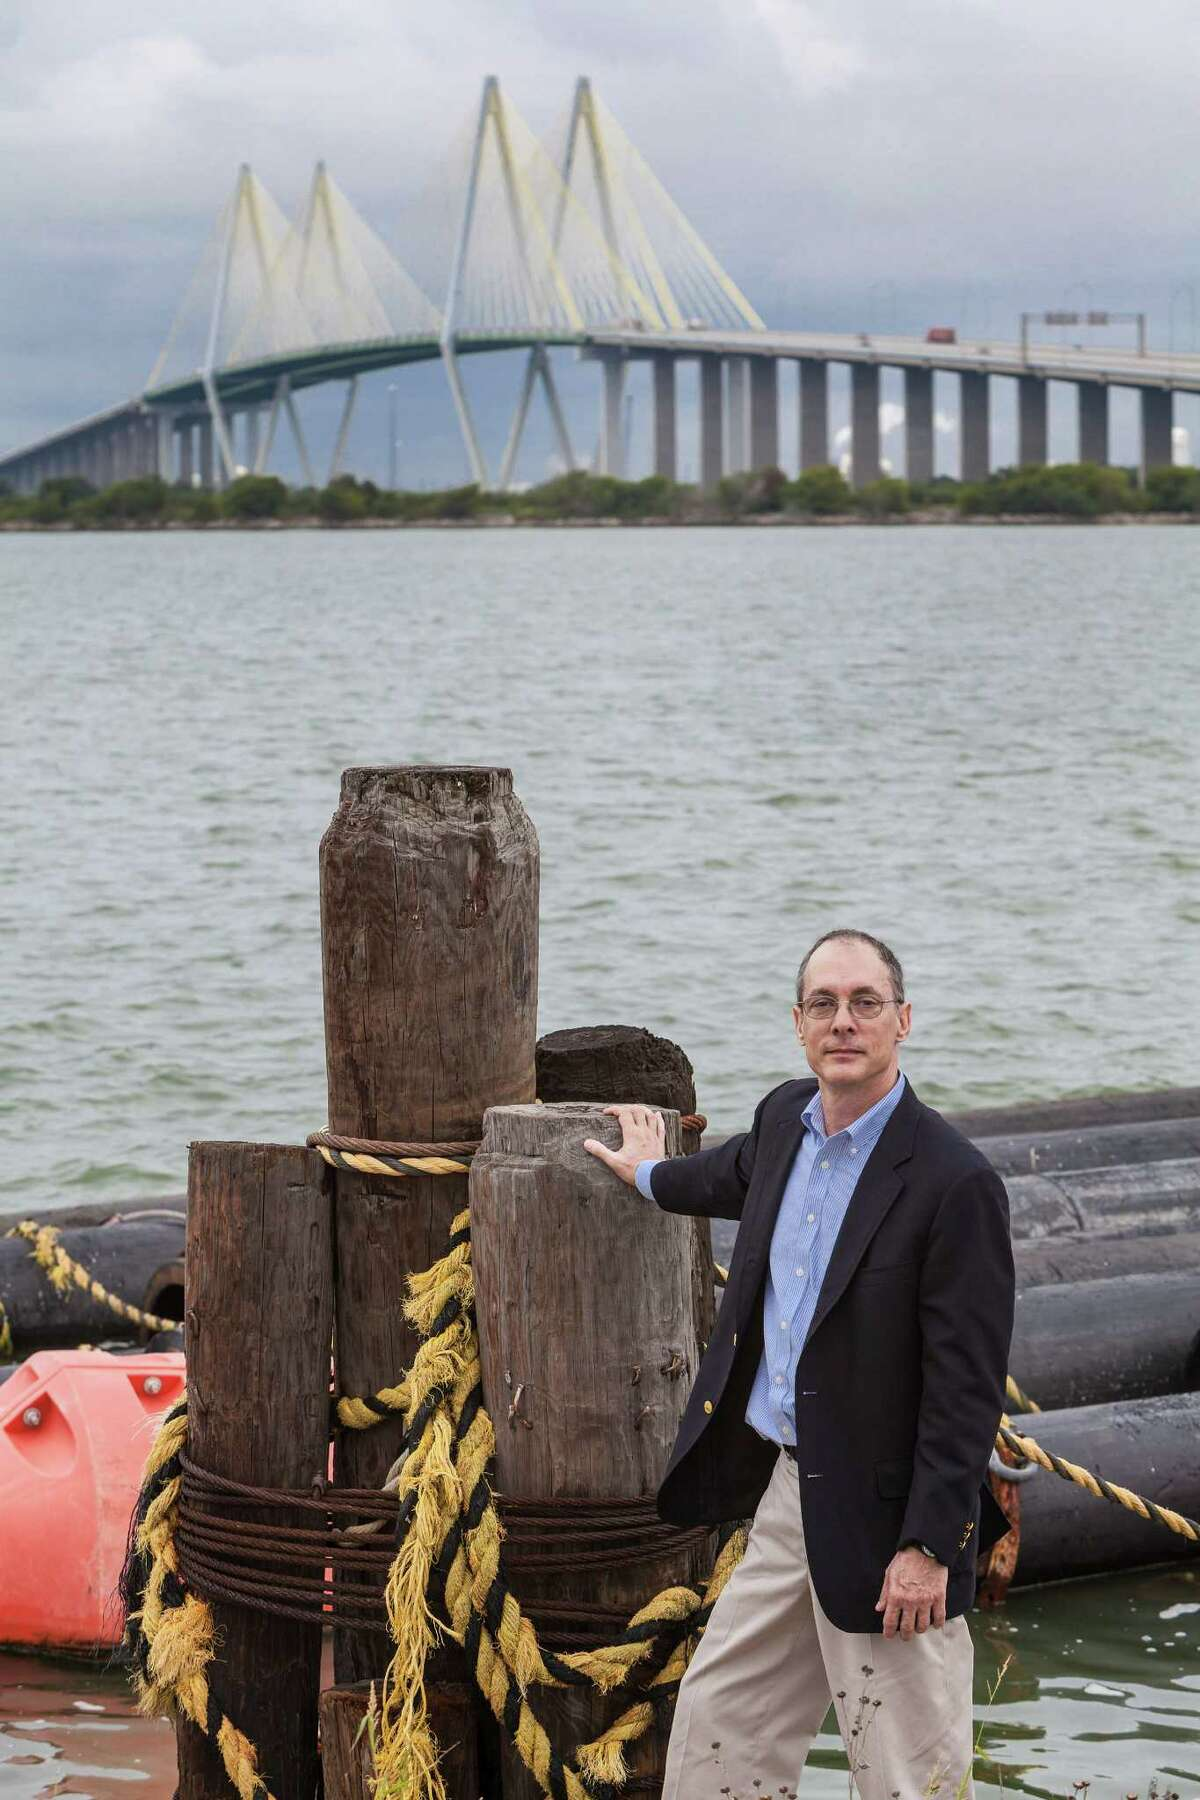 Thomas M. Colbert, Associate Professor from the Gerald D. Hines College of Architecture, UH, stands on the area northeast of the Fred Hartman Bridge, Baytown. He proposes a huge levy starting here and extending all the way across the Houston Ship Channel with giant gates to admit ship traffic under the Fred Hartman Bridge in the distance. 9/30/13 (Craig H. Hartley/For the Chronicle)